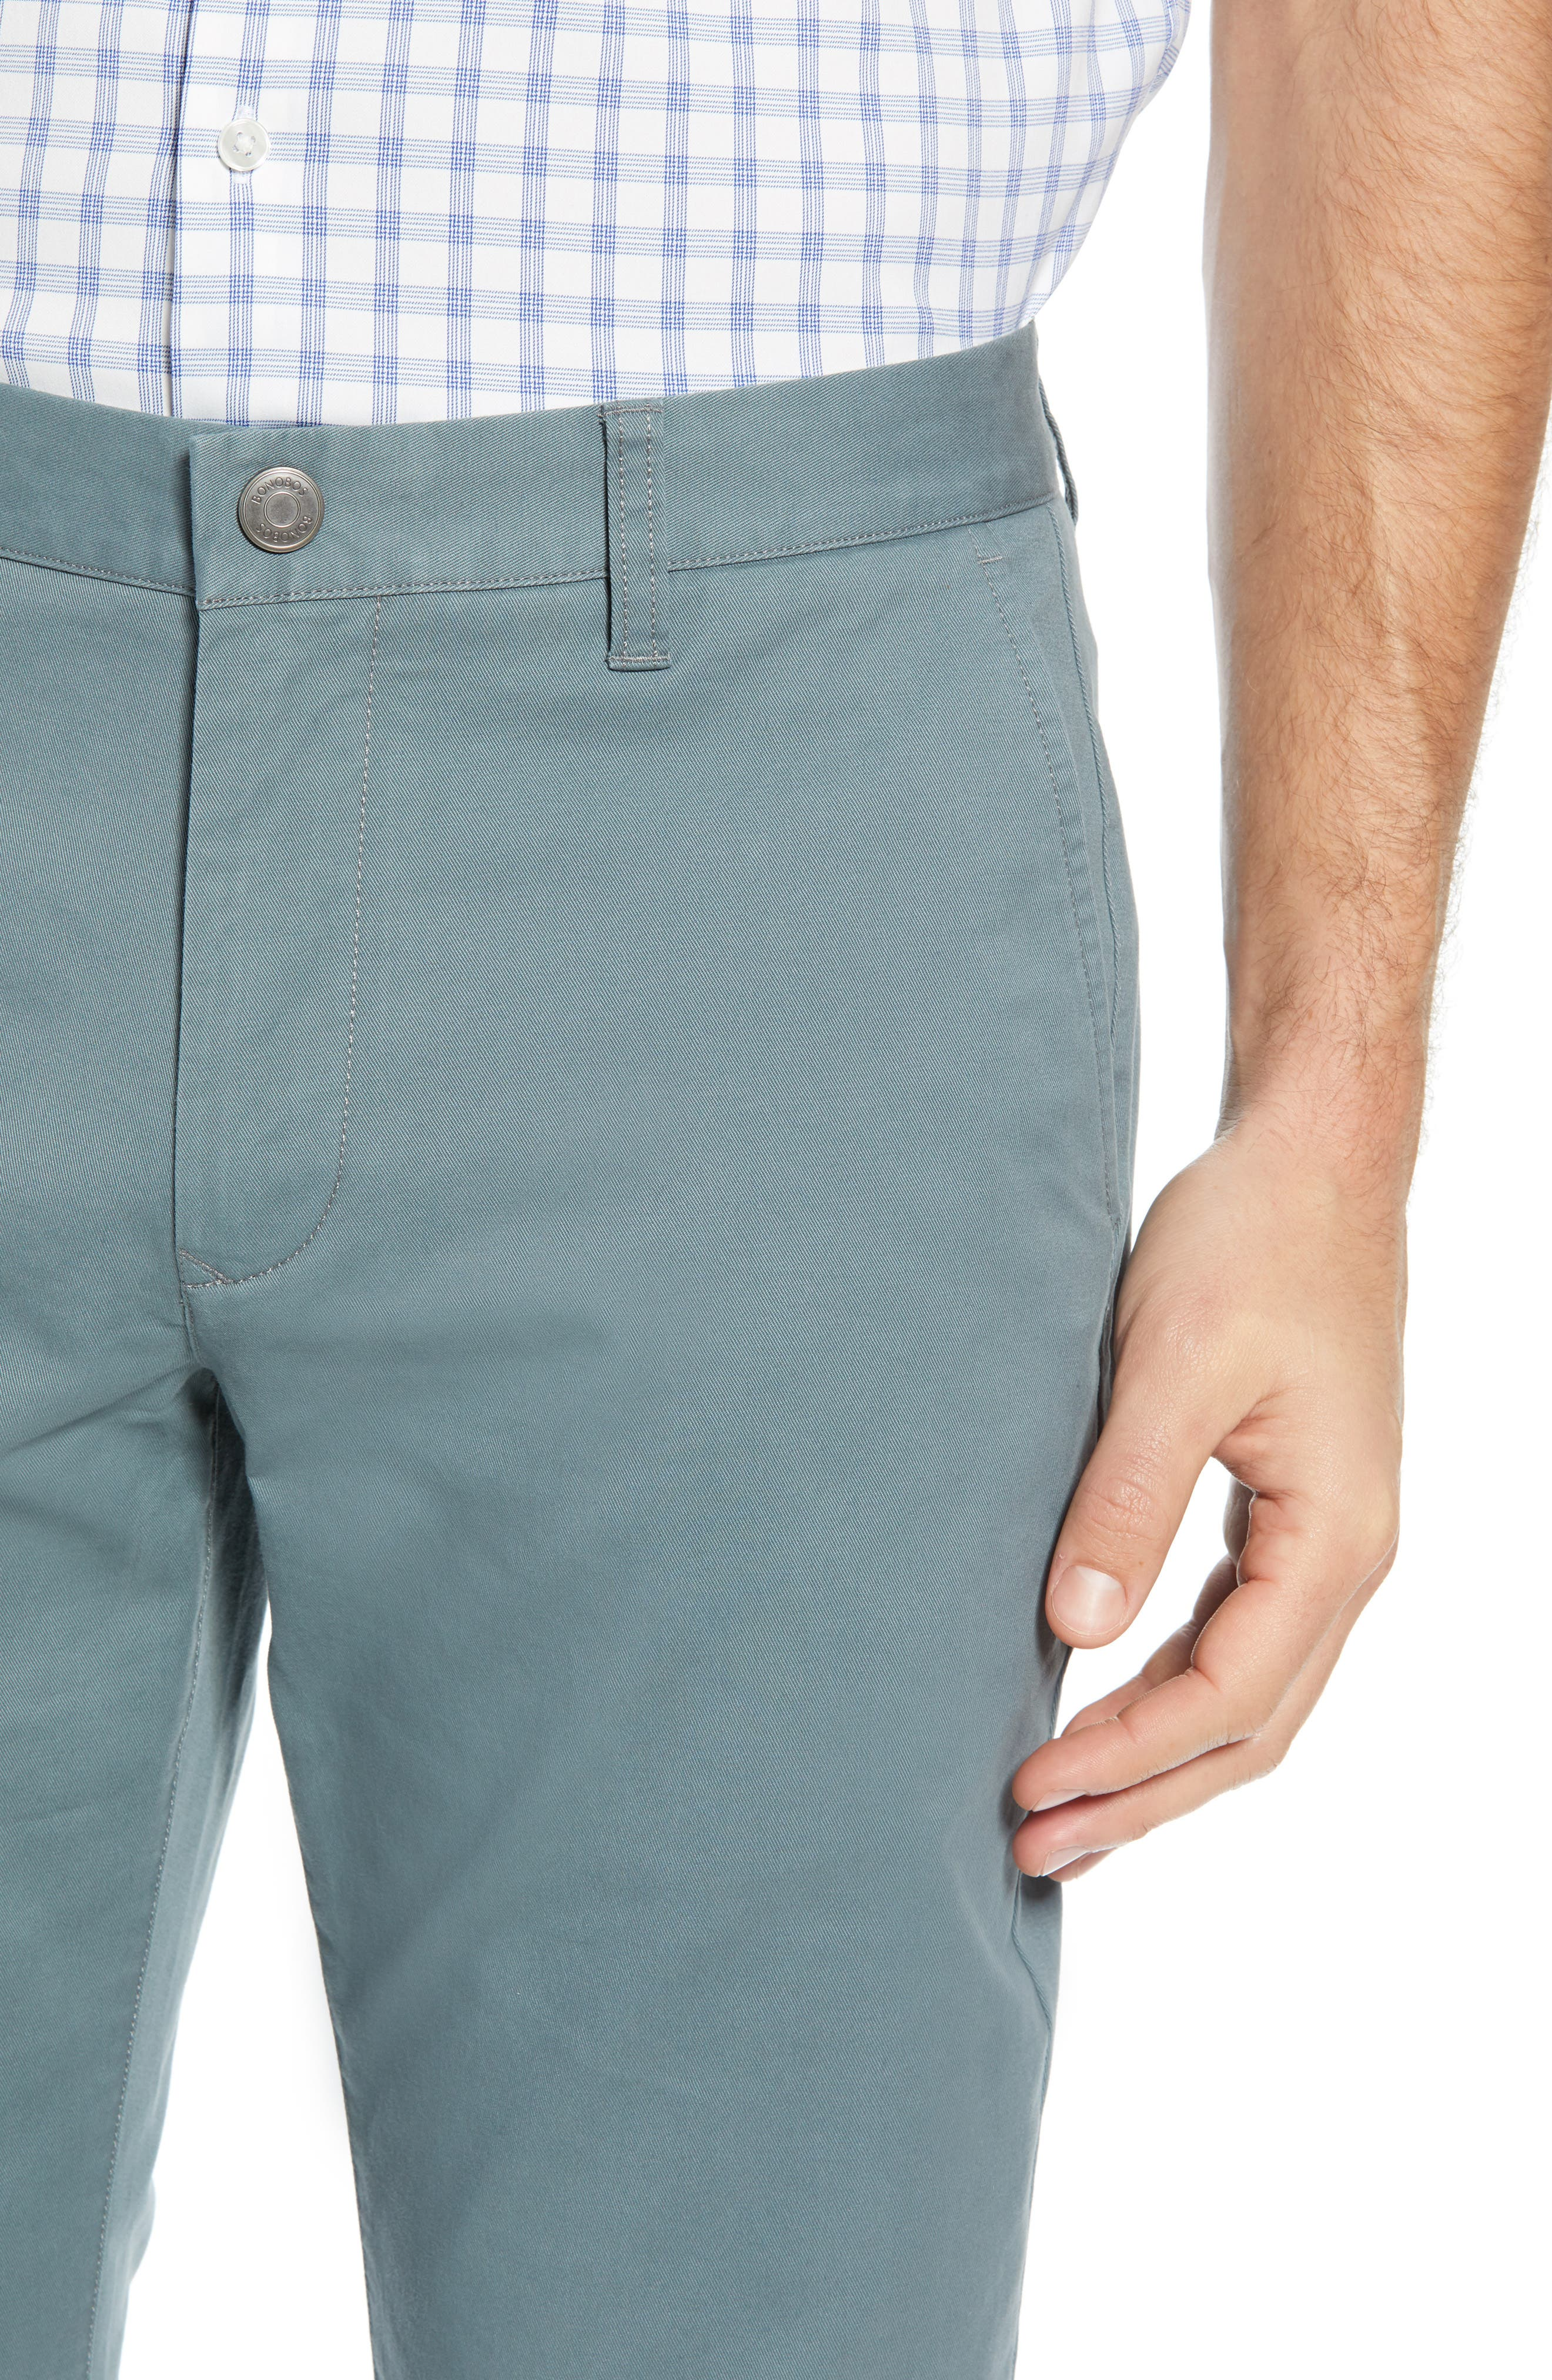 BONOBOS, Slim Fit Stretch Washed Chinos, Alternate thumbnail 5, color, NOPALES